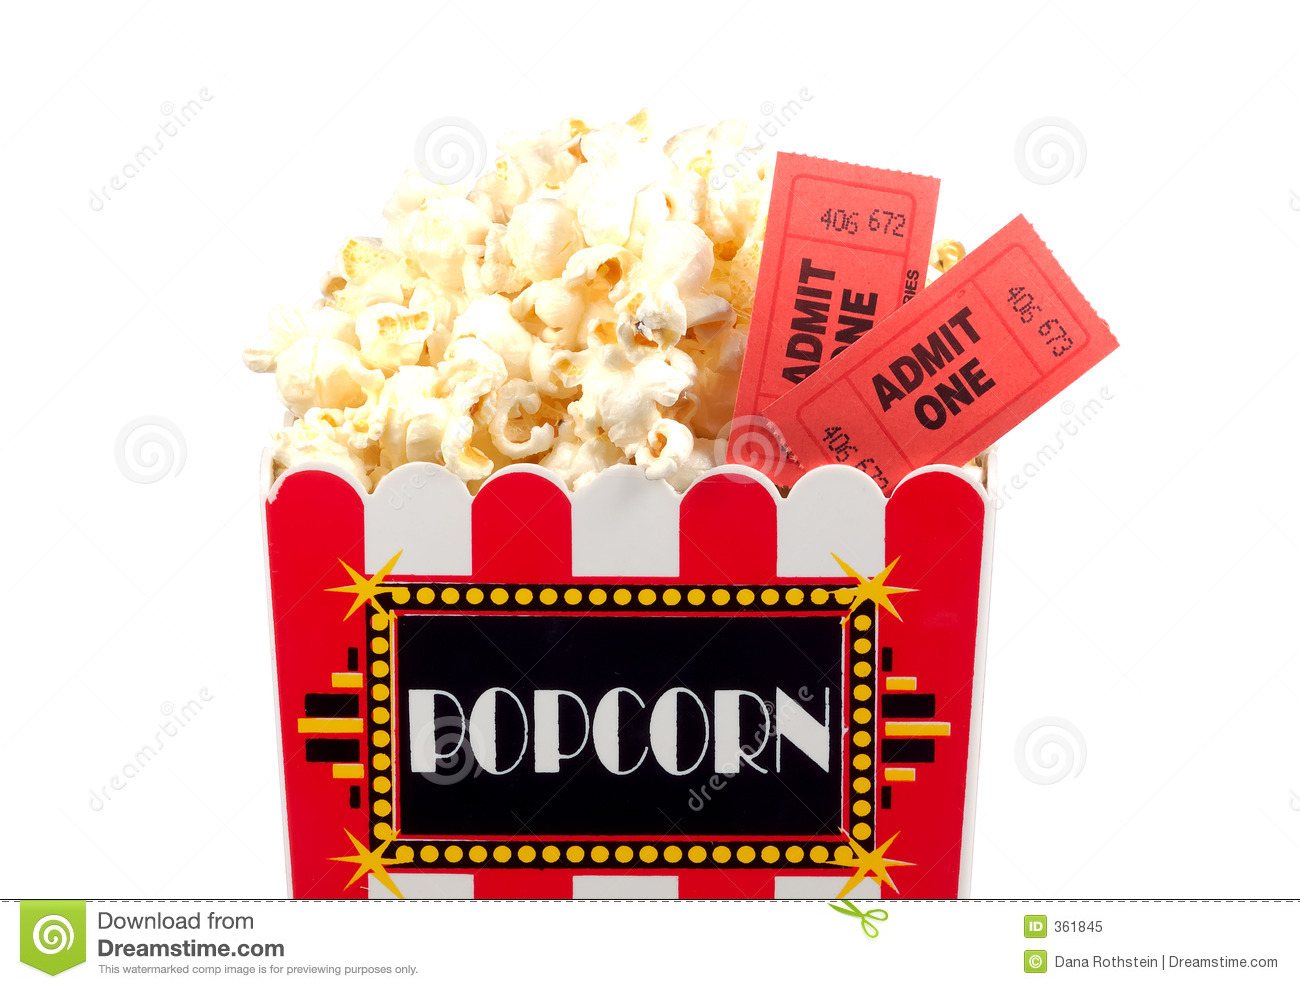 Popcorn clipart ticket Collection movie images Popcorn 102